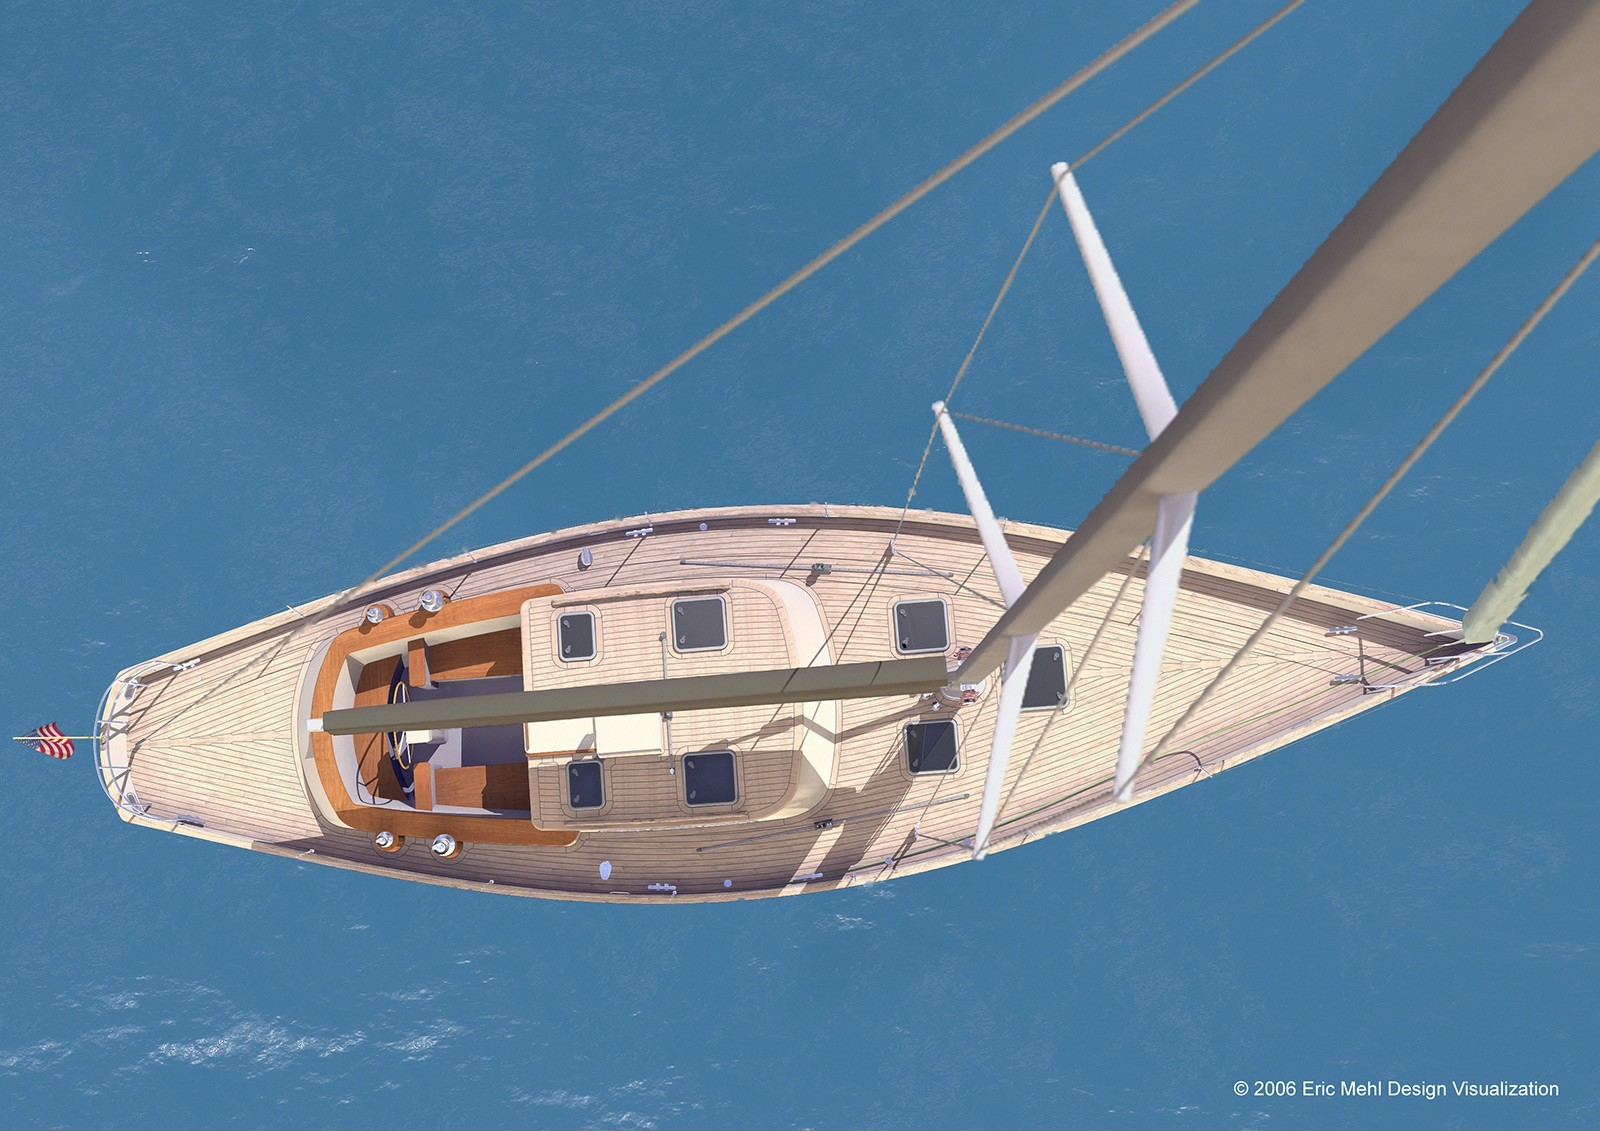 Sail Boat View from Mast by Eric Mehl